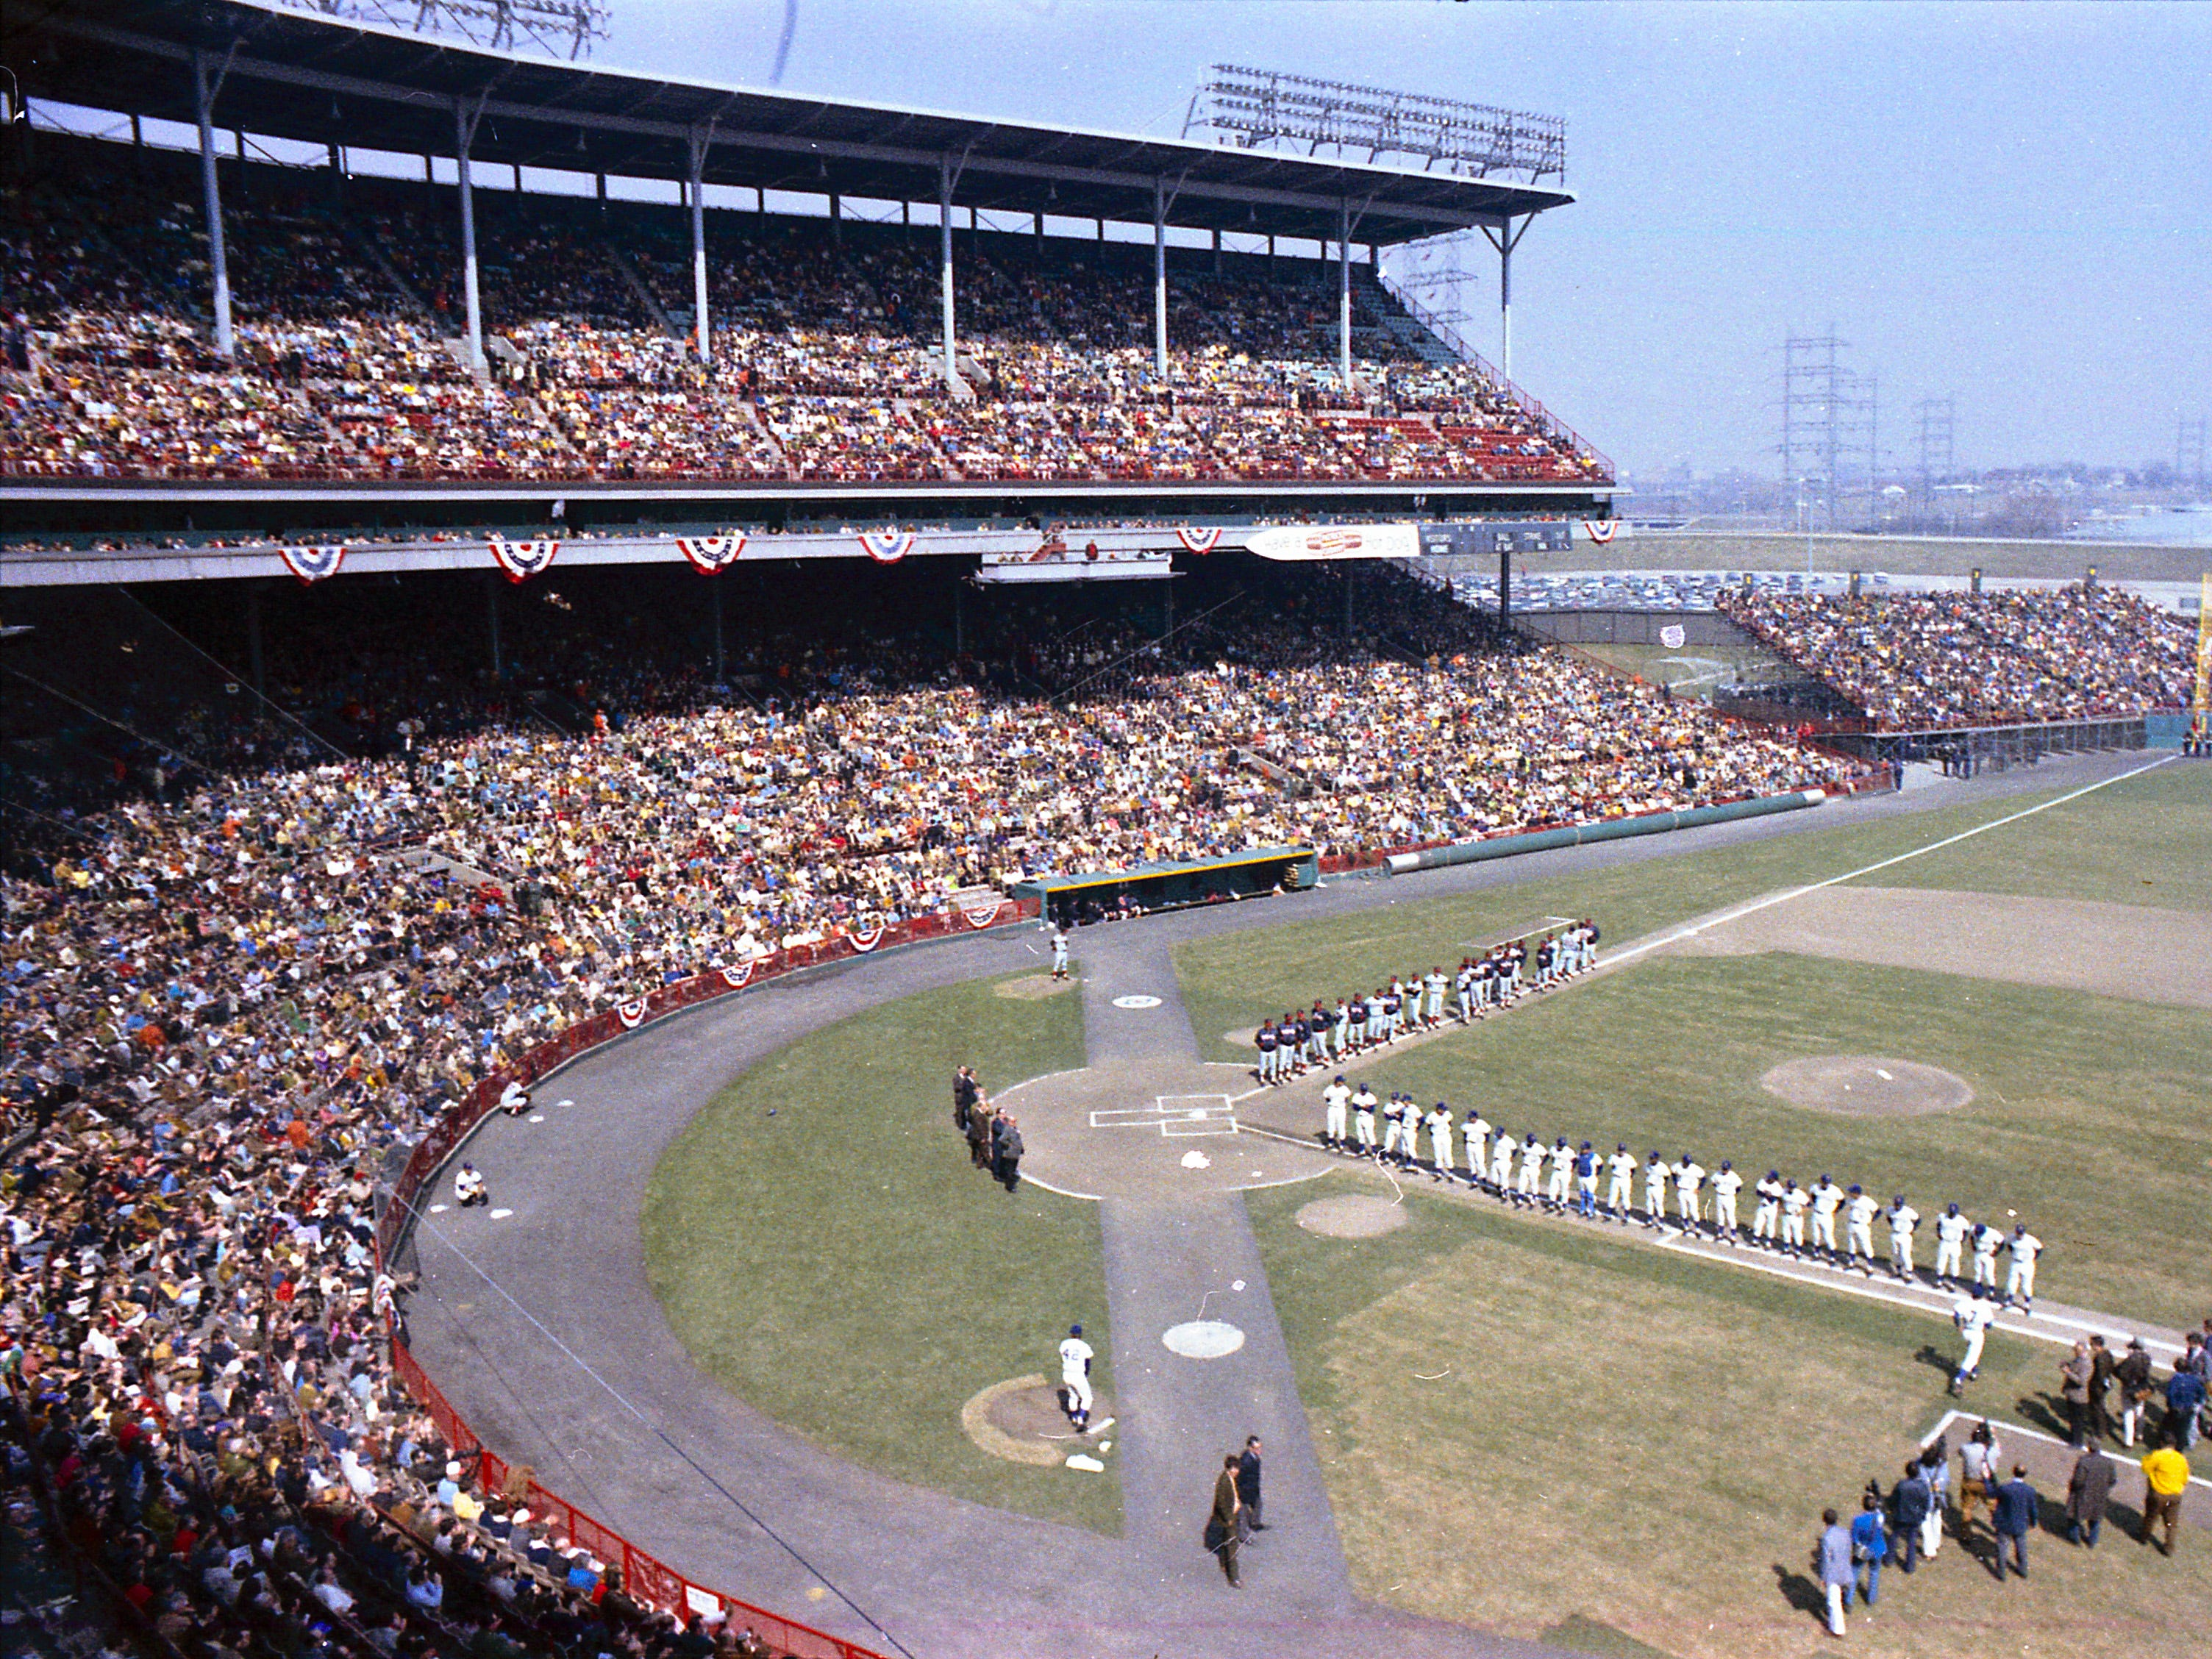 The Milwaukee Brewers and California Angels take part in opening-day ceremonies at a packed County Stadium on April 10, 1971. The Brewers won the home opener, 4-3. This photo was published in the April 11, 1971, Milwaukee Journal.